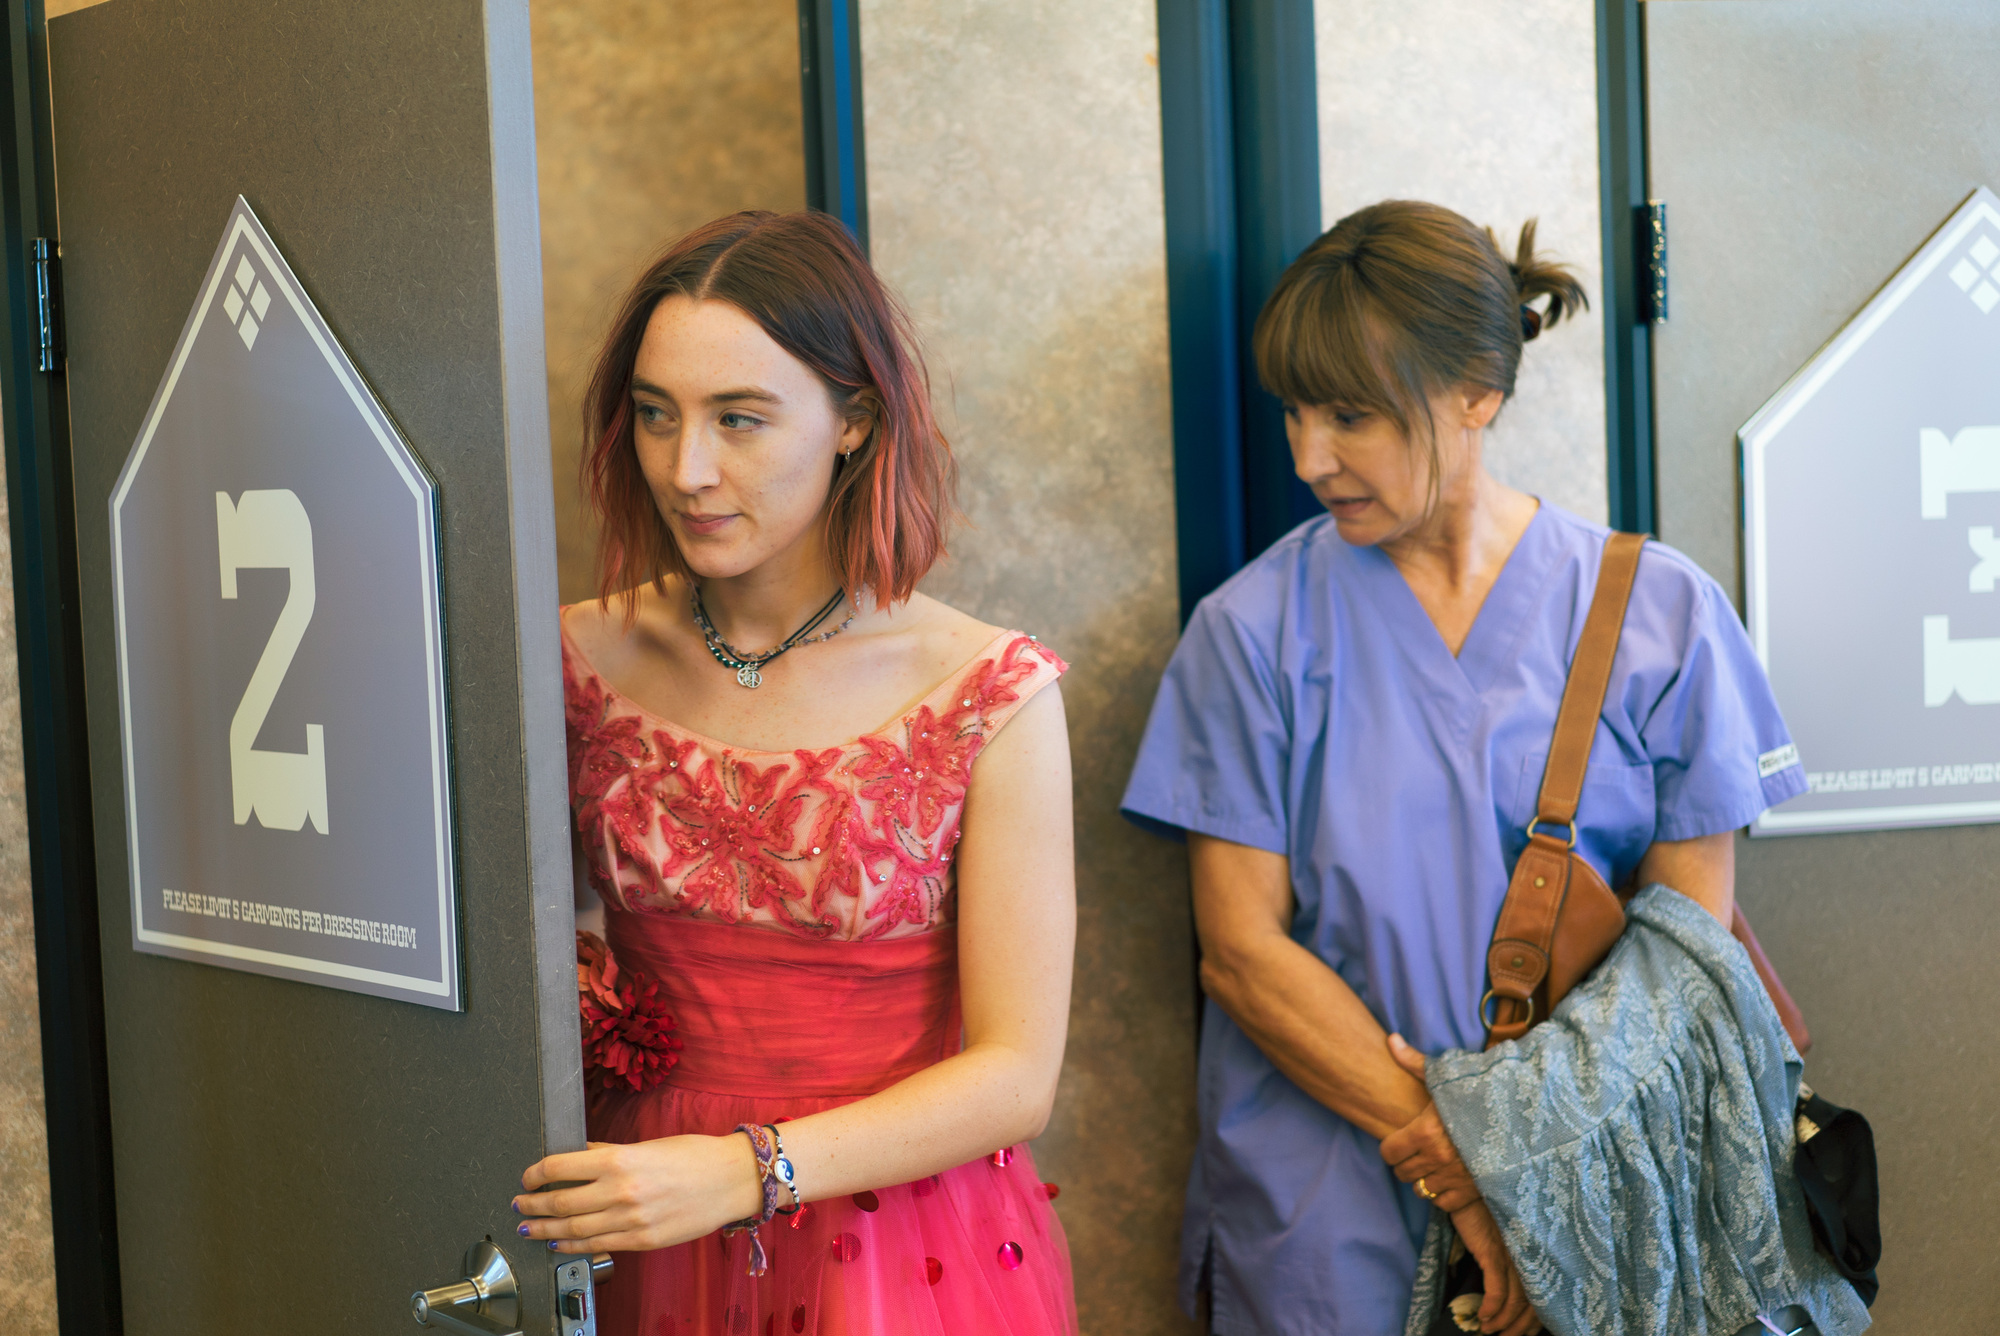 Saoirse Ronan, left, and Laurie Metcalf in a scene from 'Lady Bird.'